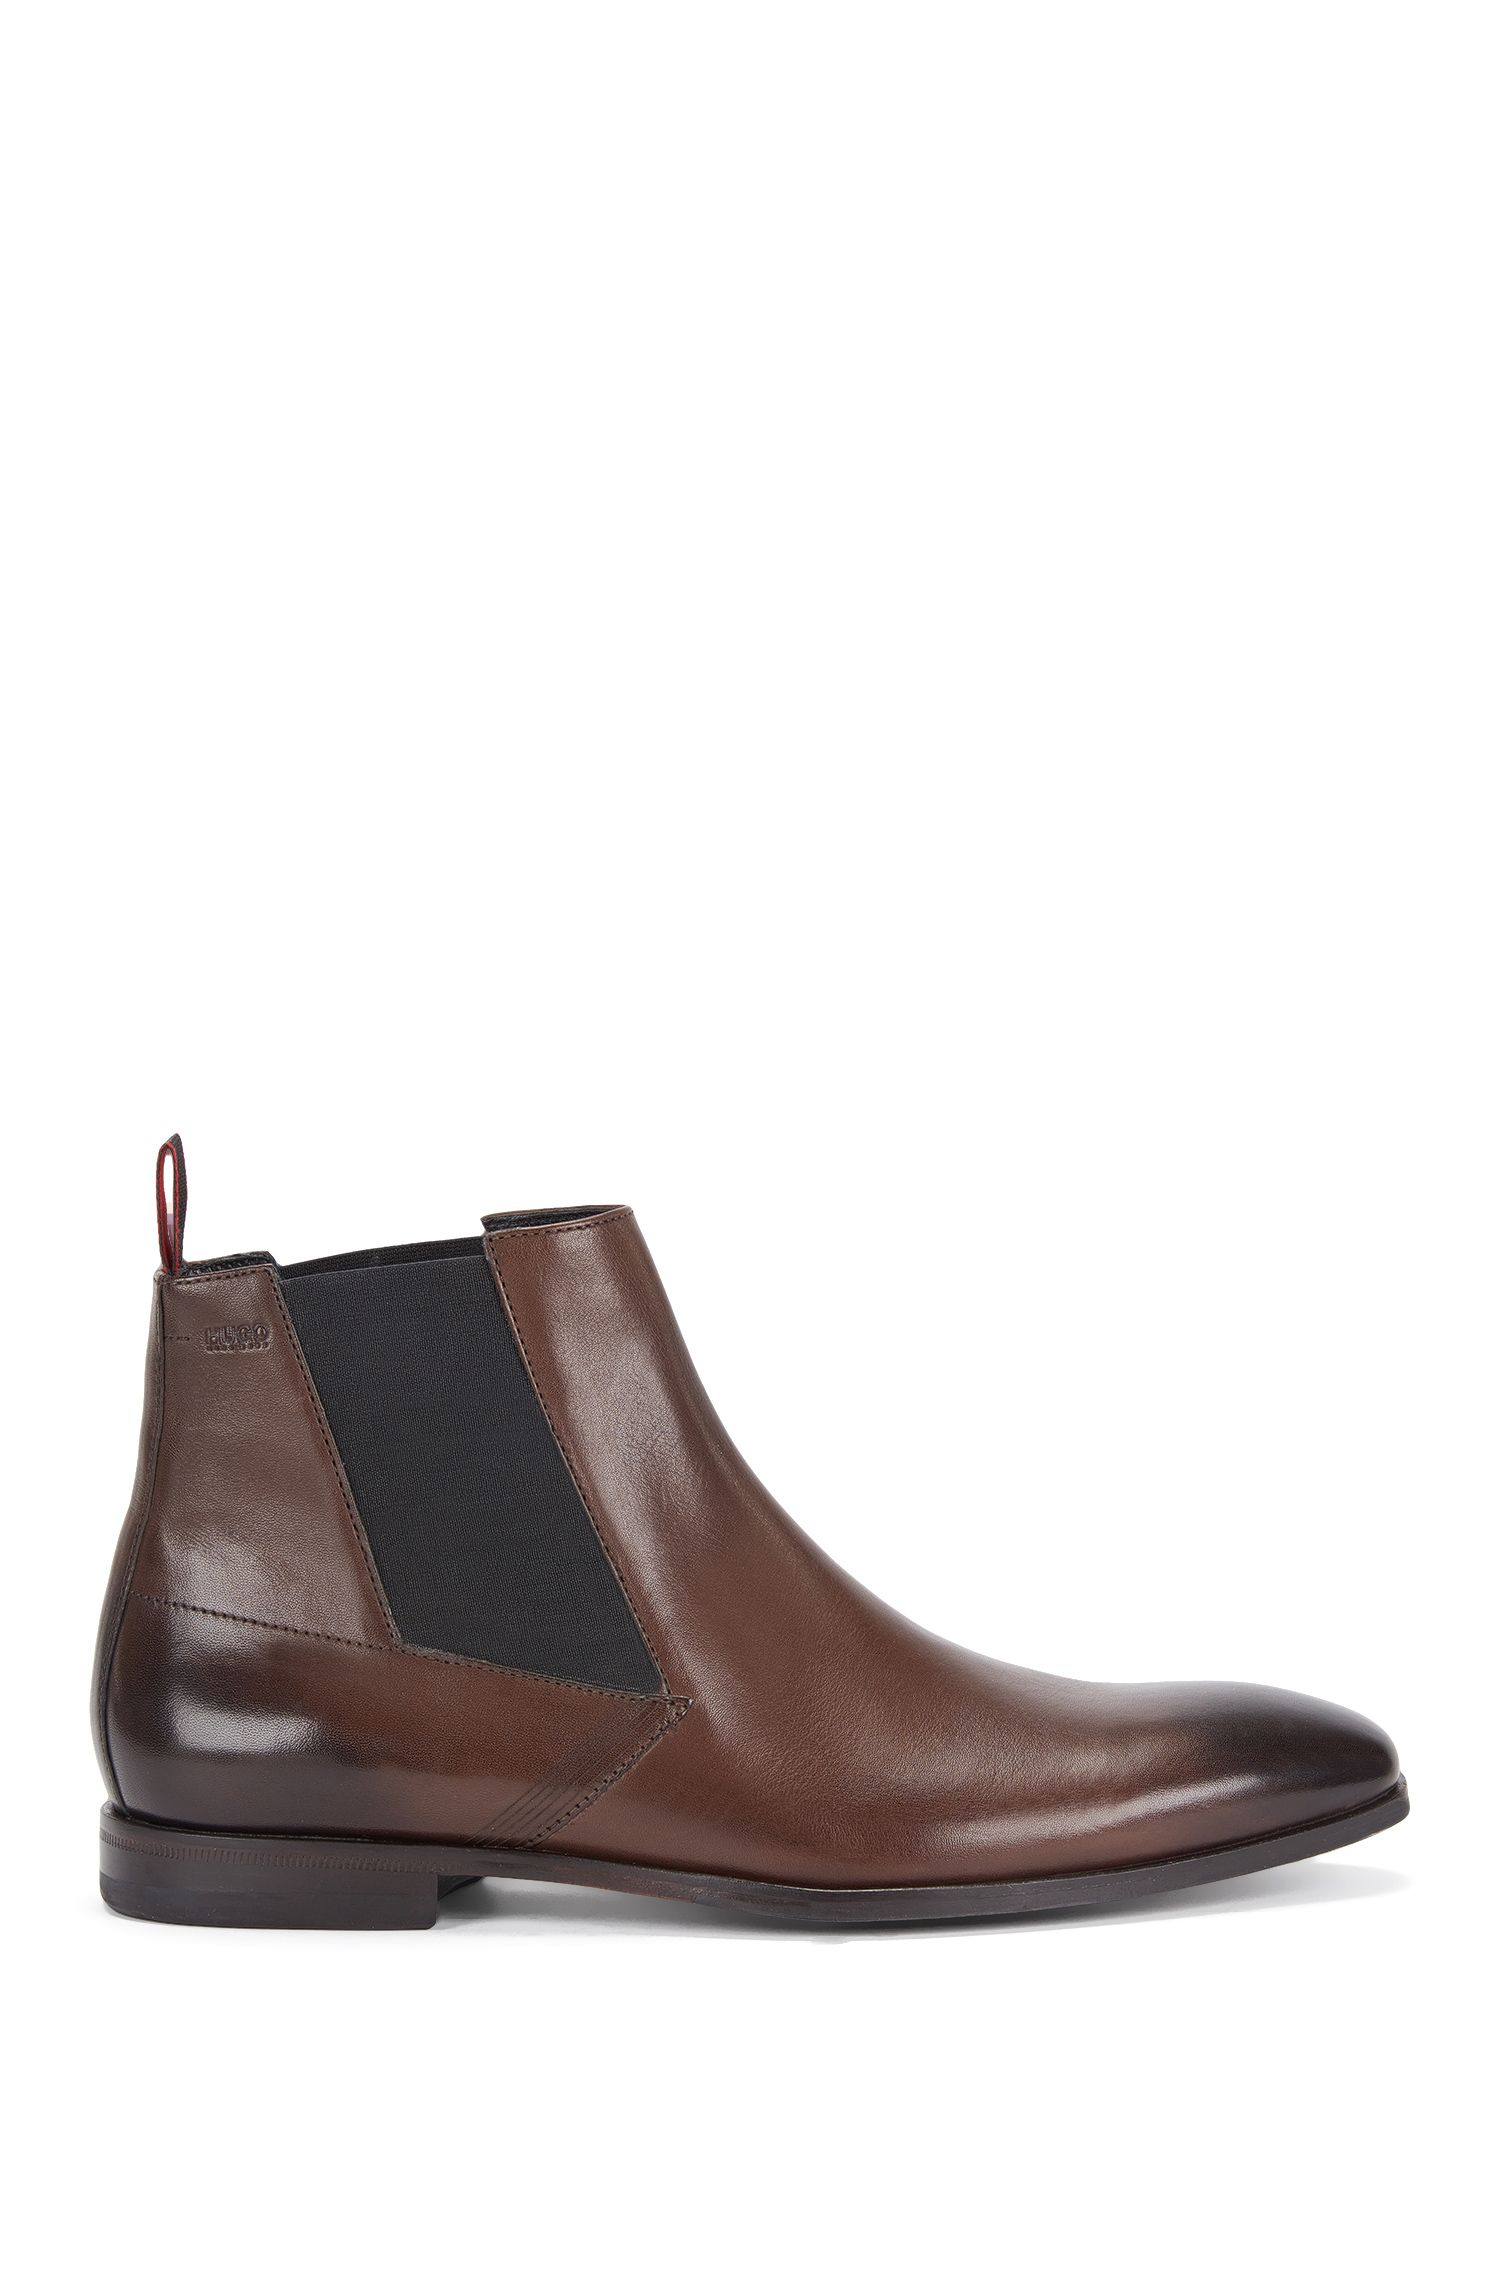 Chelsea boots in leather with lasered detail: 'Square_Cheb_ltls'